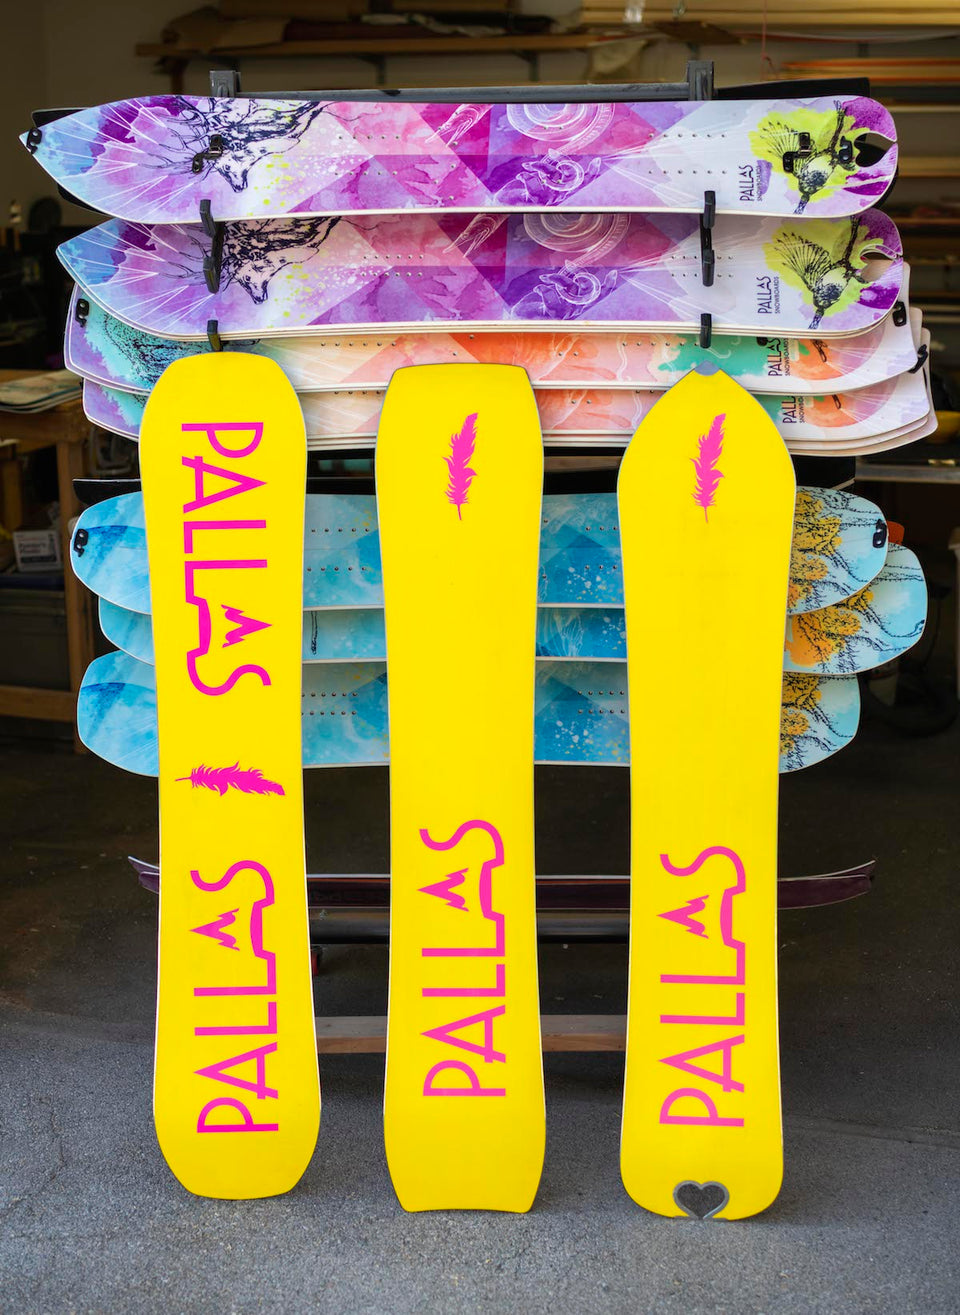 19-20 Pallas Demo Boards